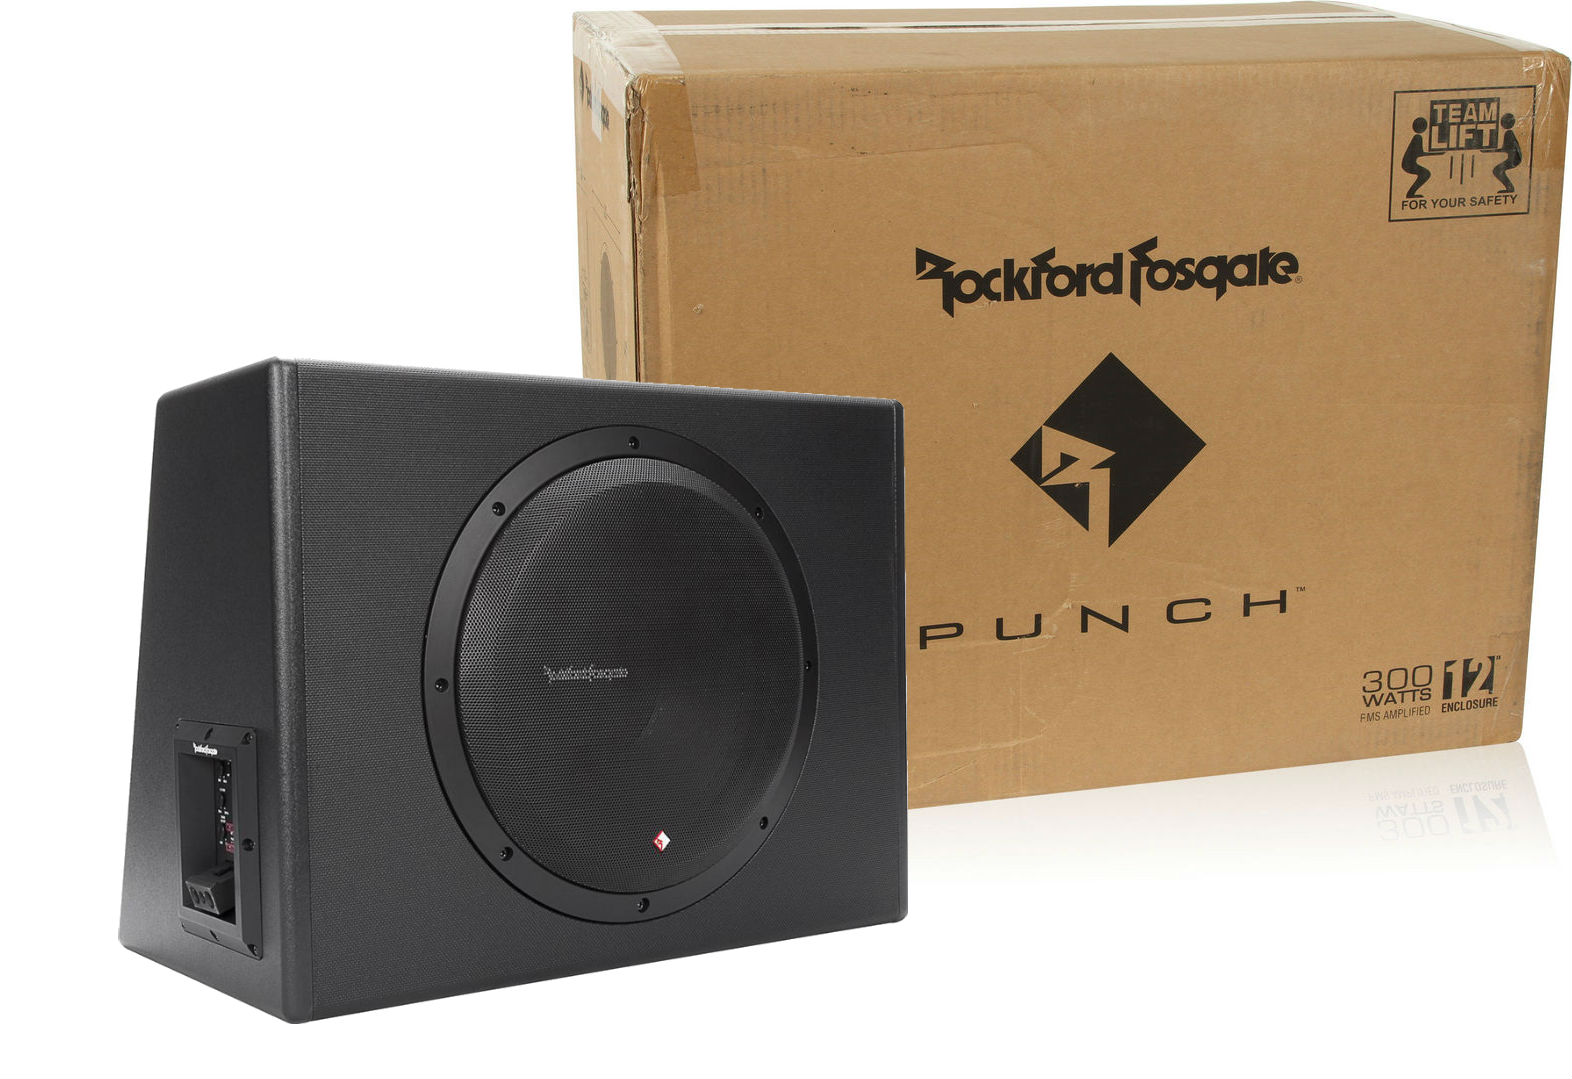 rockford fosgate p300 12 single 12 300 watt powered. Black Bedroom Furniture Sets. Home Design Ideas